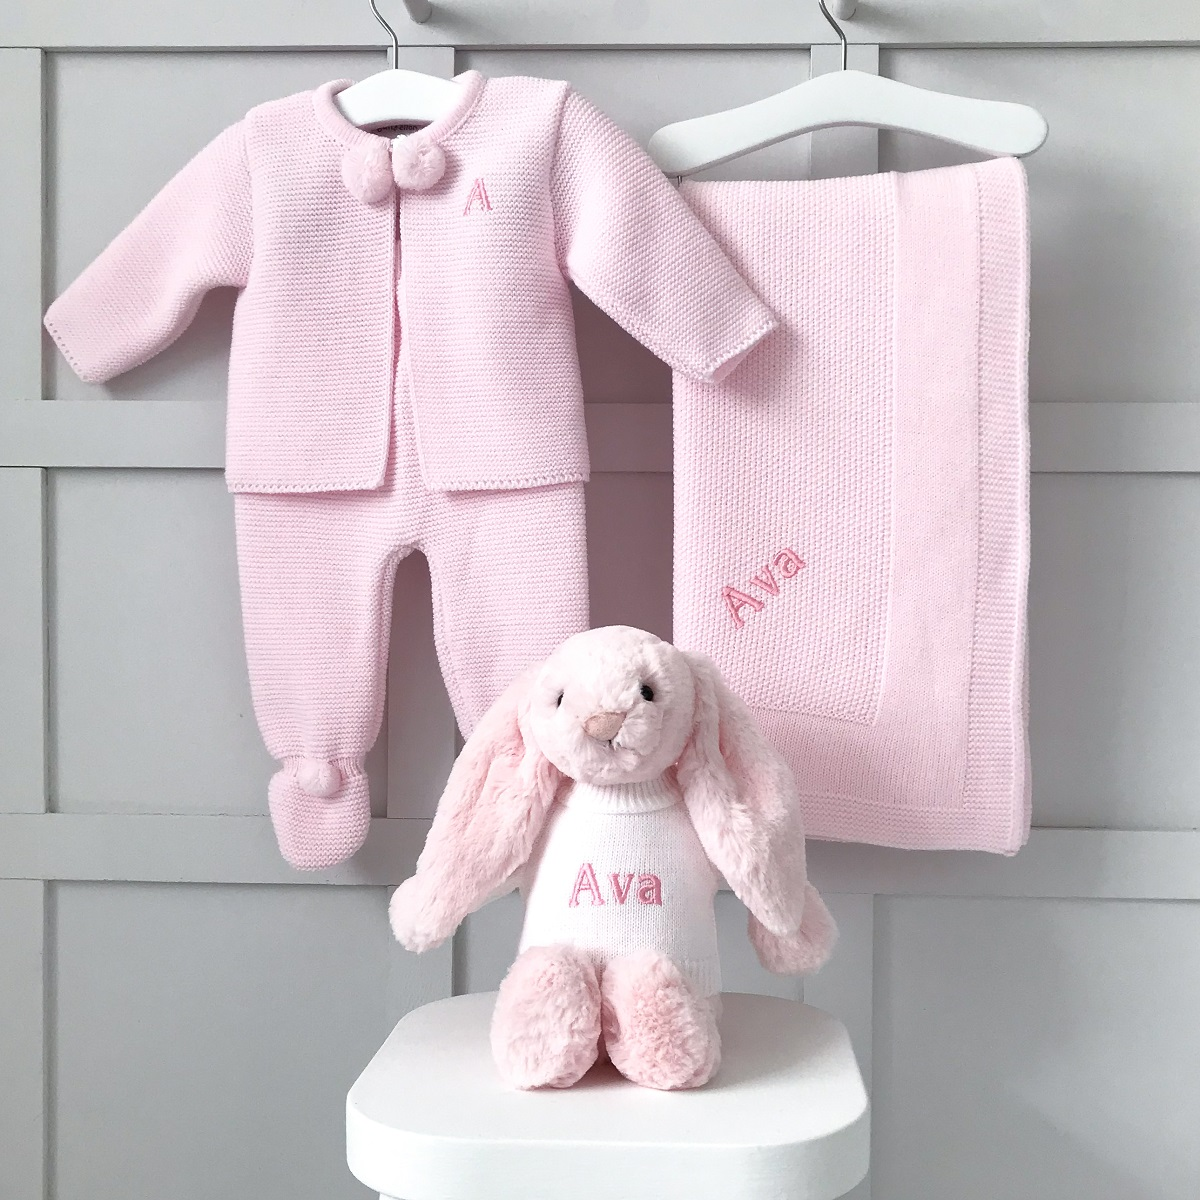 Dandelion Personalised Pink Receiving Shawl, Knitted Jacket and Leggings and Jellycat Bashful Bunny Gift Set